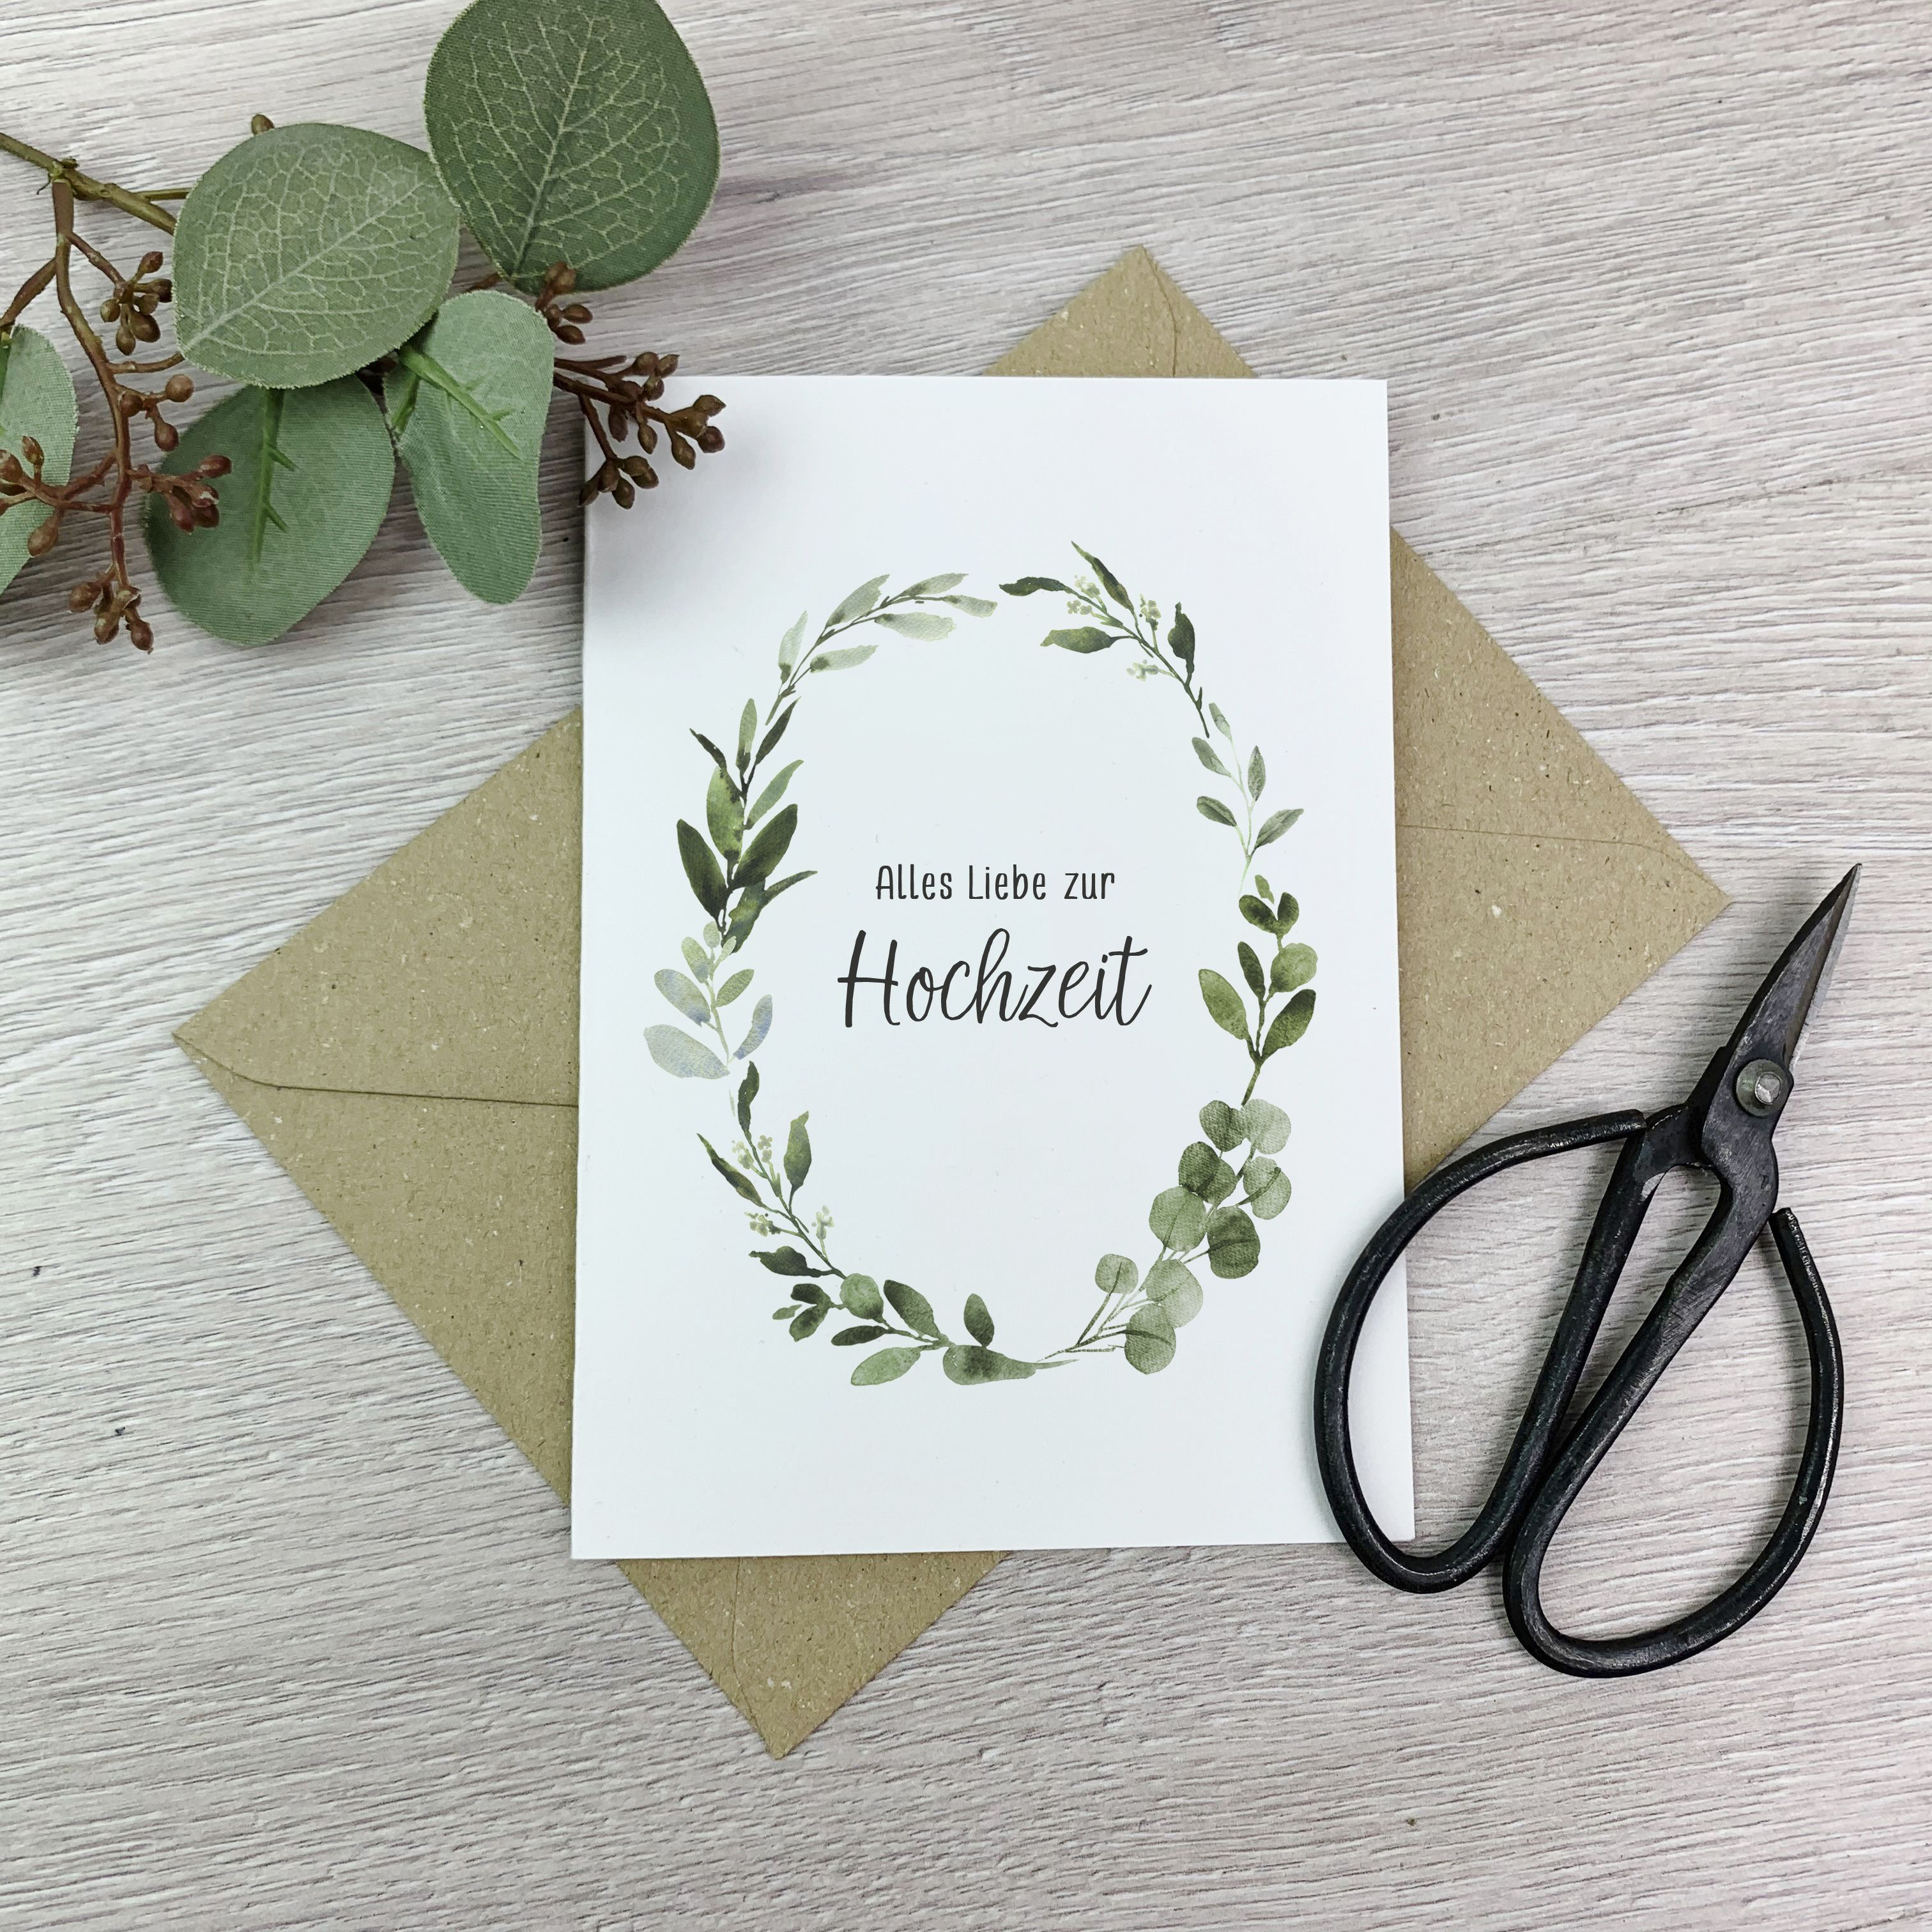 Gluckwunschkarte Hochzeit In 2020 Cards Place Card Holders Place Cards